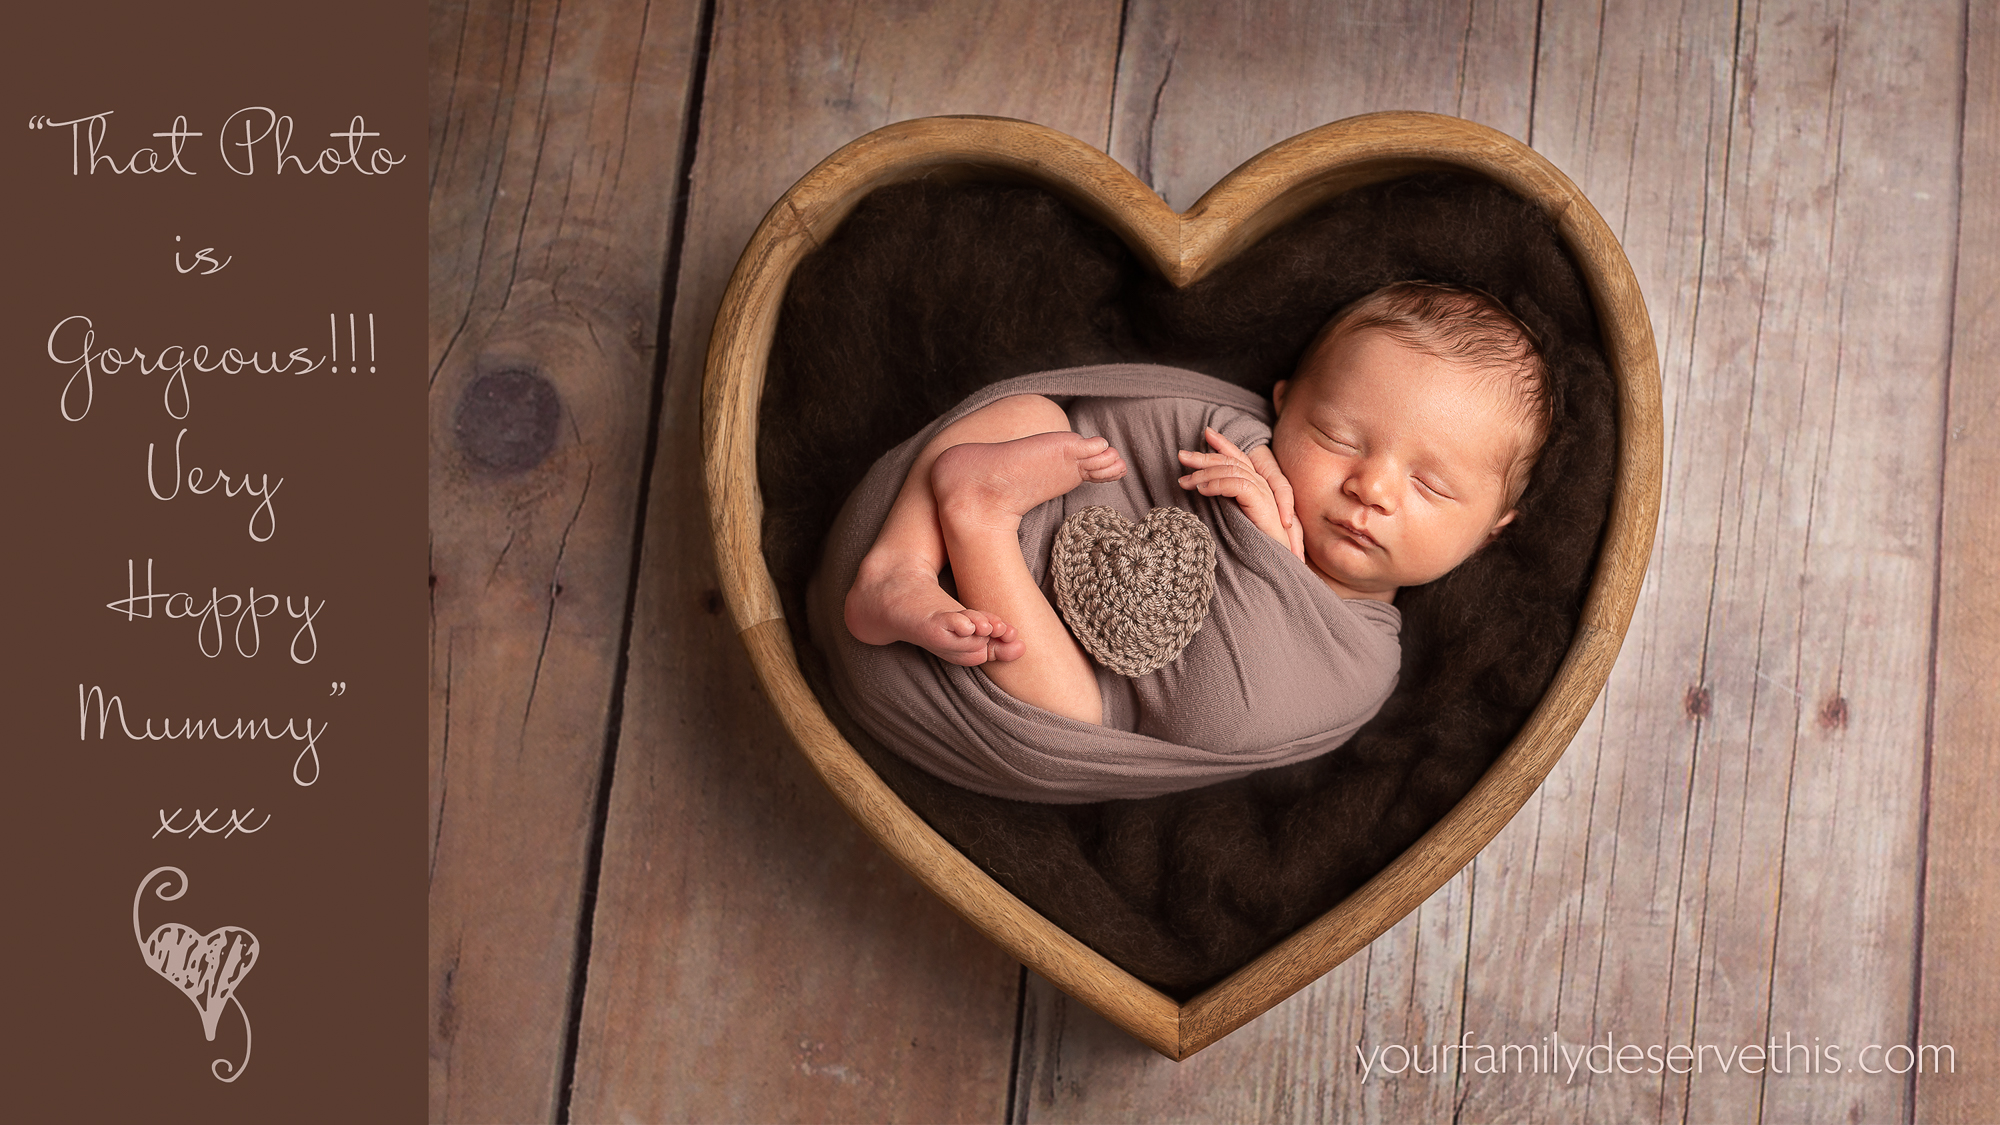 newborn photographer serving families in Hampshire, Berkshire, Wiltshire, Surrey, Dorset and London